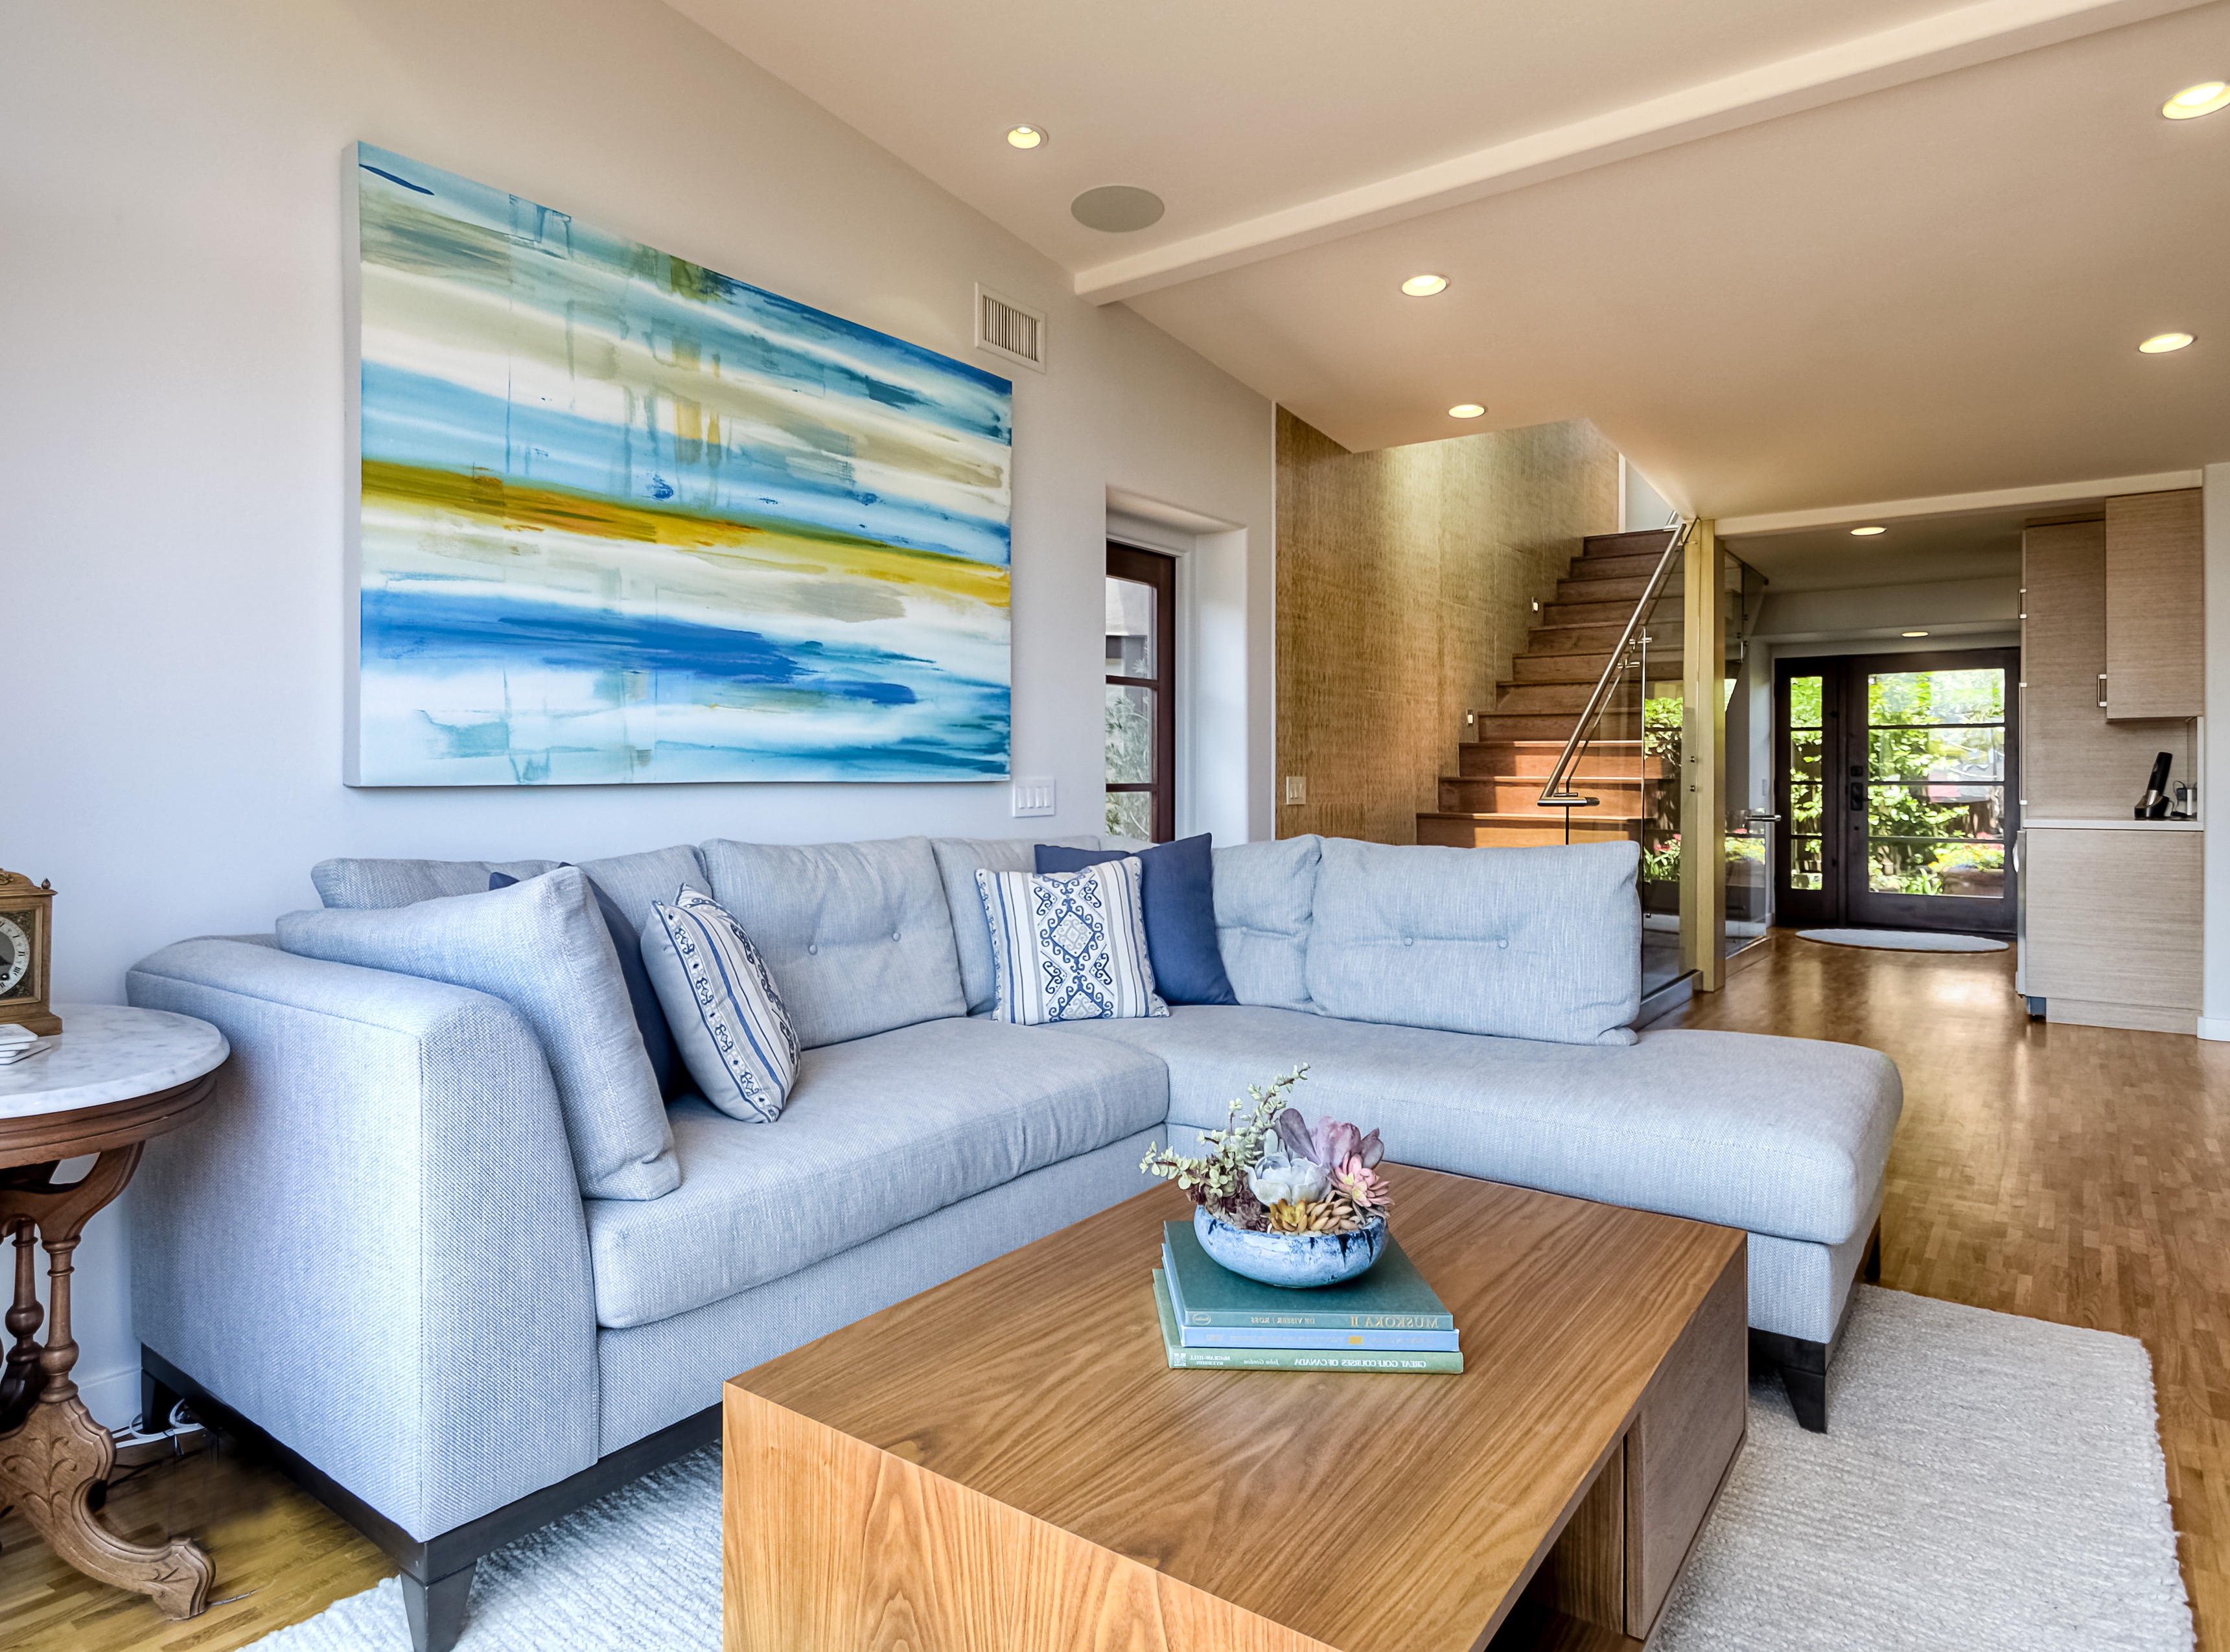 Ice Blue Sectional Sofa And Ocean Inspired Modern Art (View 15 of 25)